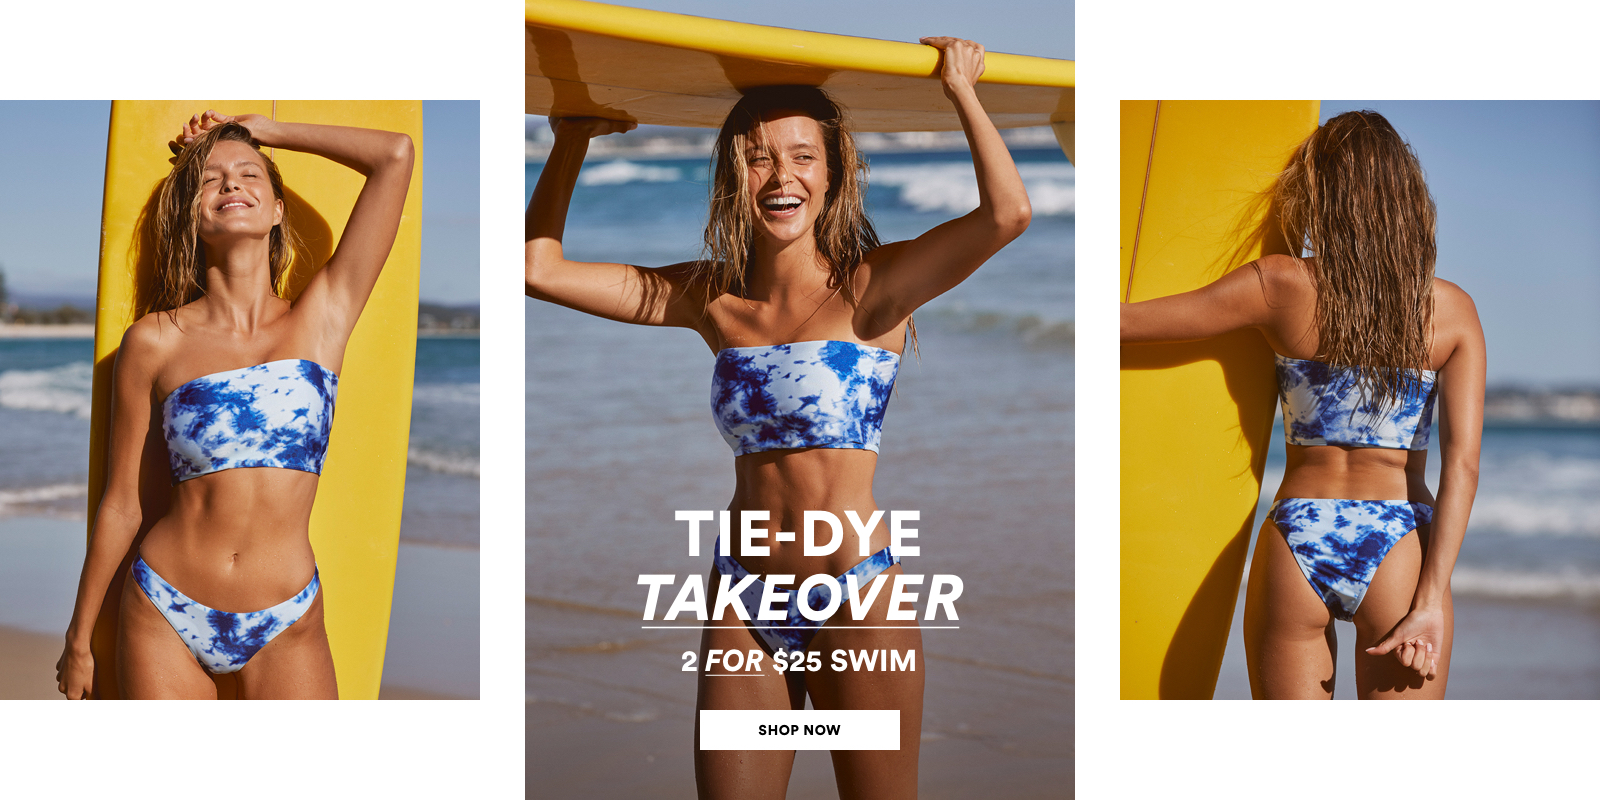 Tie-dye takeover. 2 for $25 Swim. Click to shop.